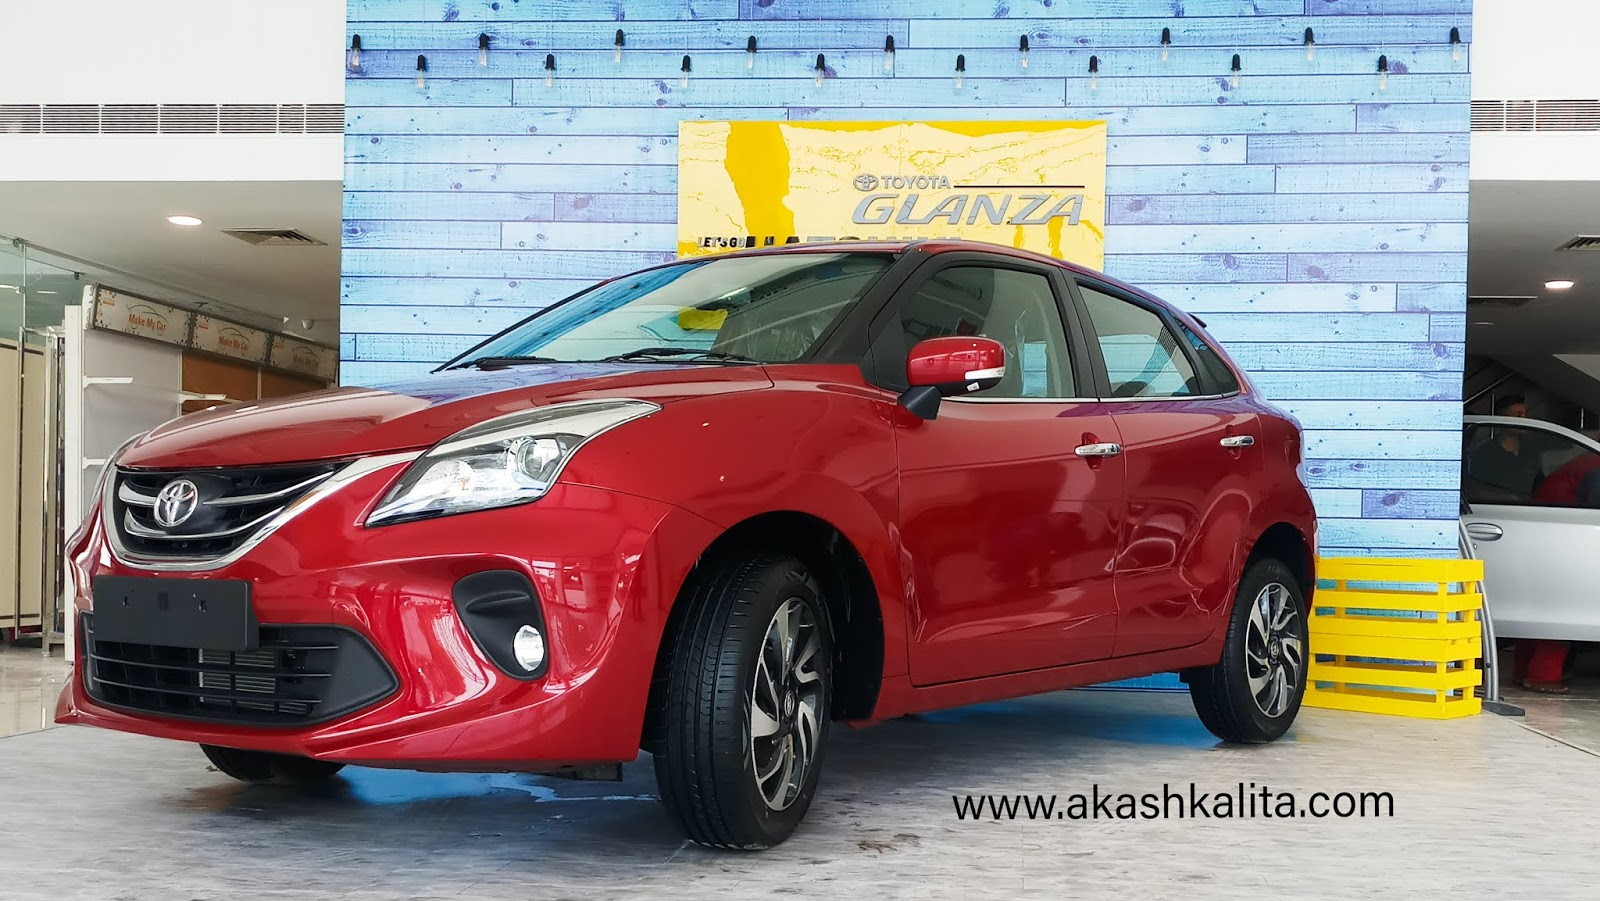 Akash Kalita Toyota Glanza Price And Specifications